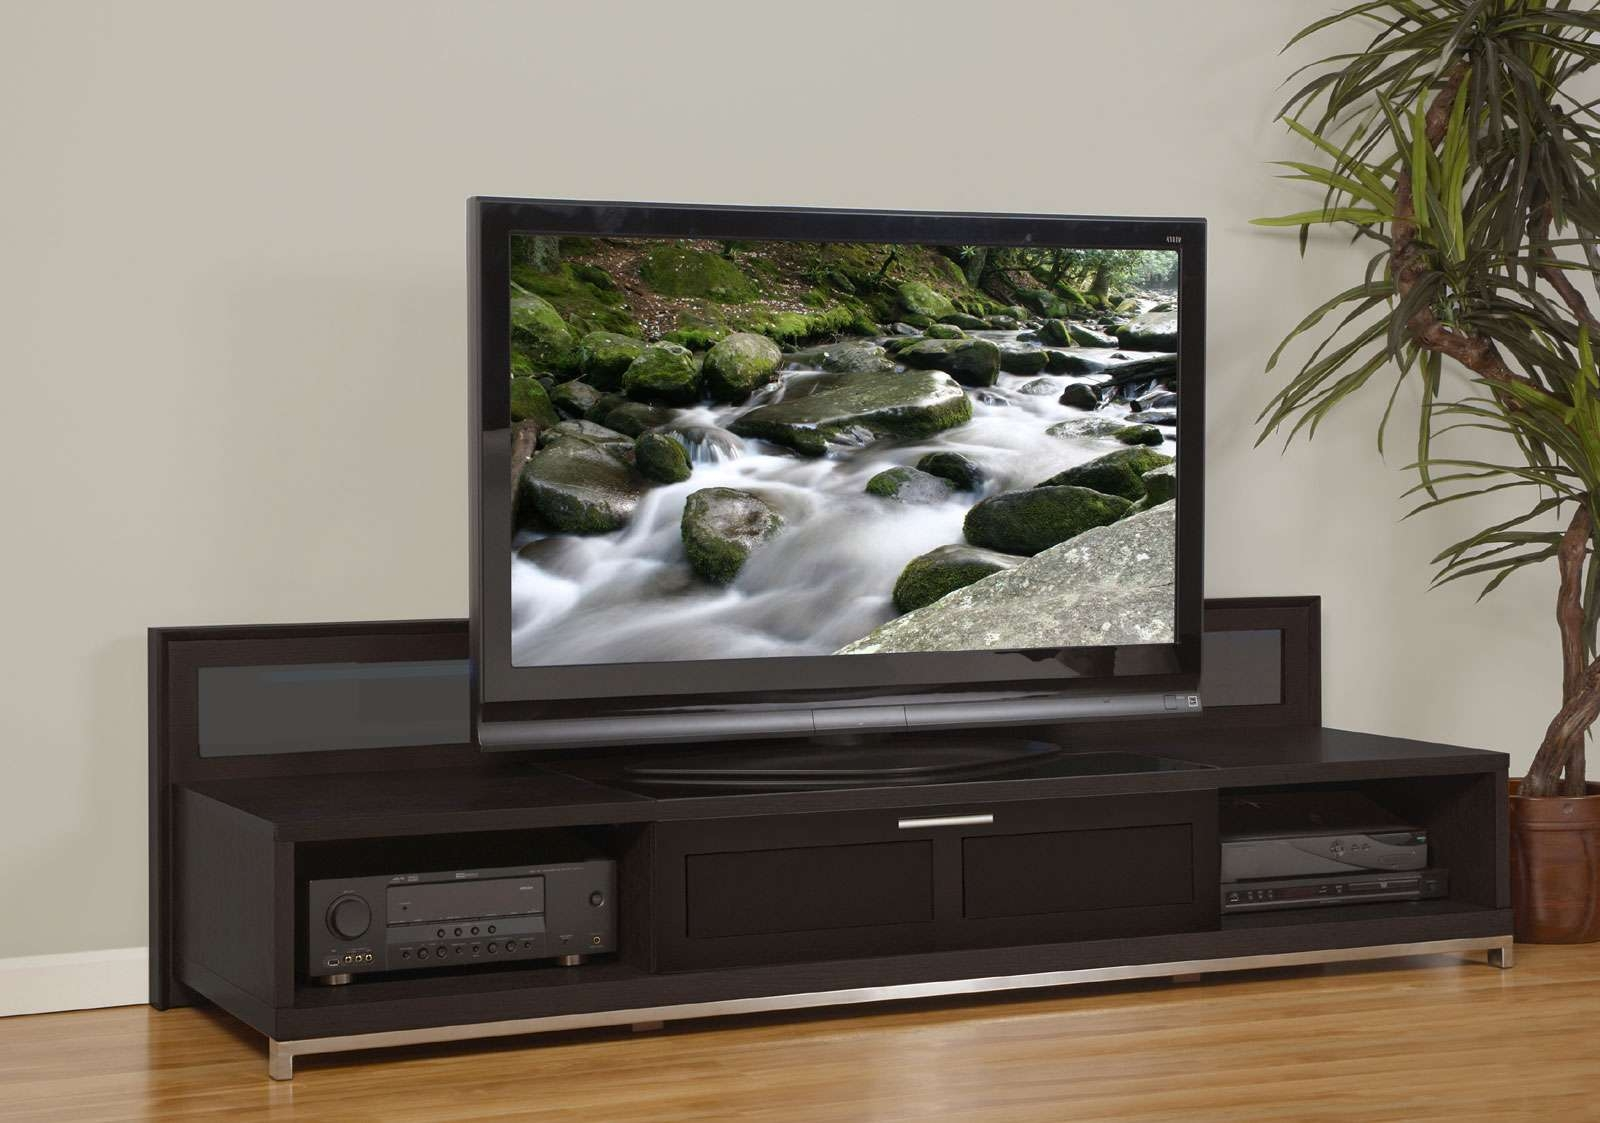 Unique Tv Stands For 60 Inch Flat Screens 20 For Simple Home With Regard To Unique Tv Stands For Flat Screens (View 19 of 20)